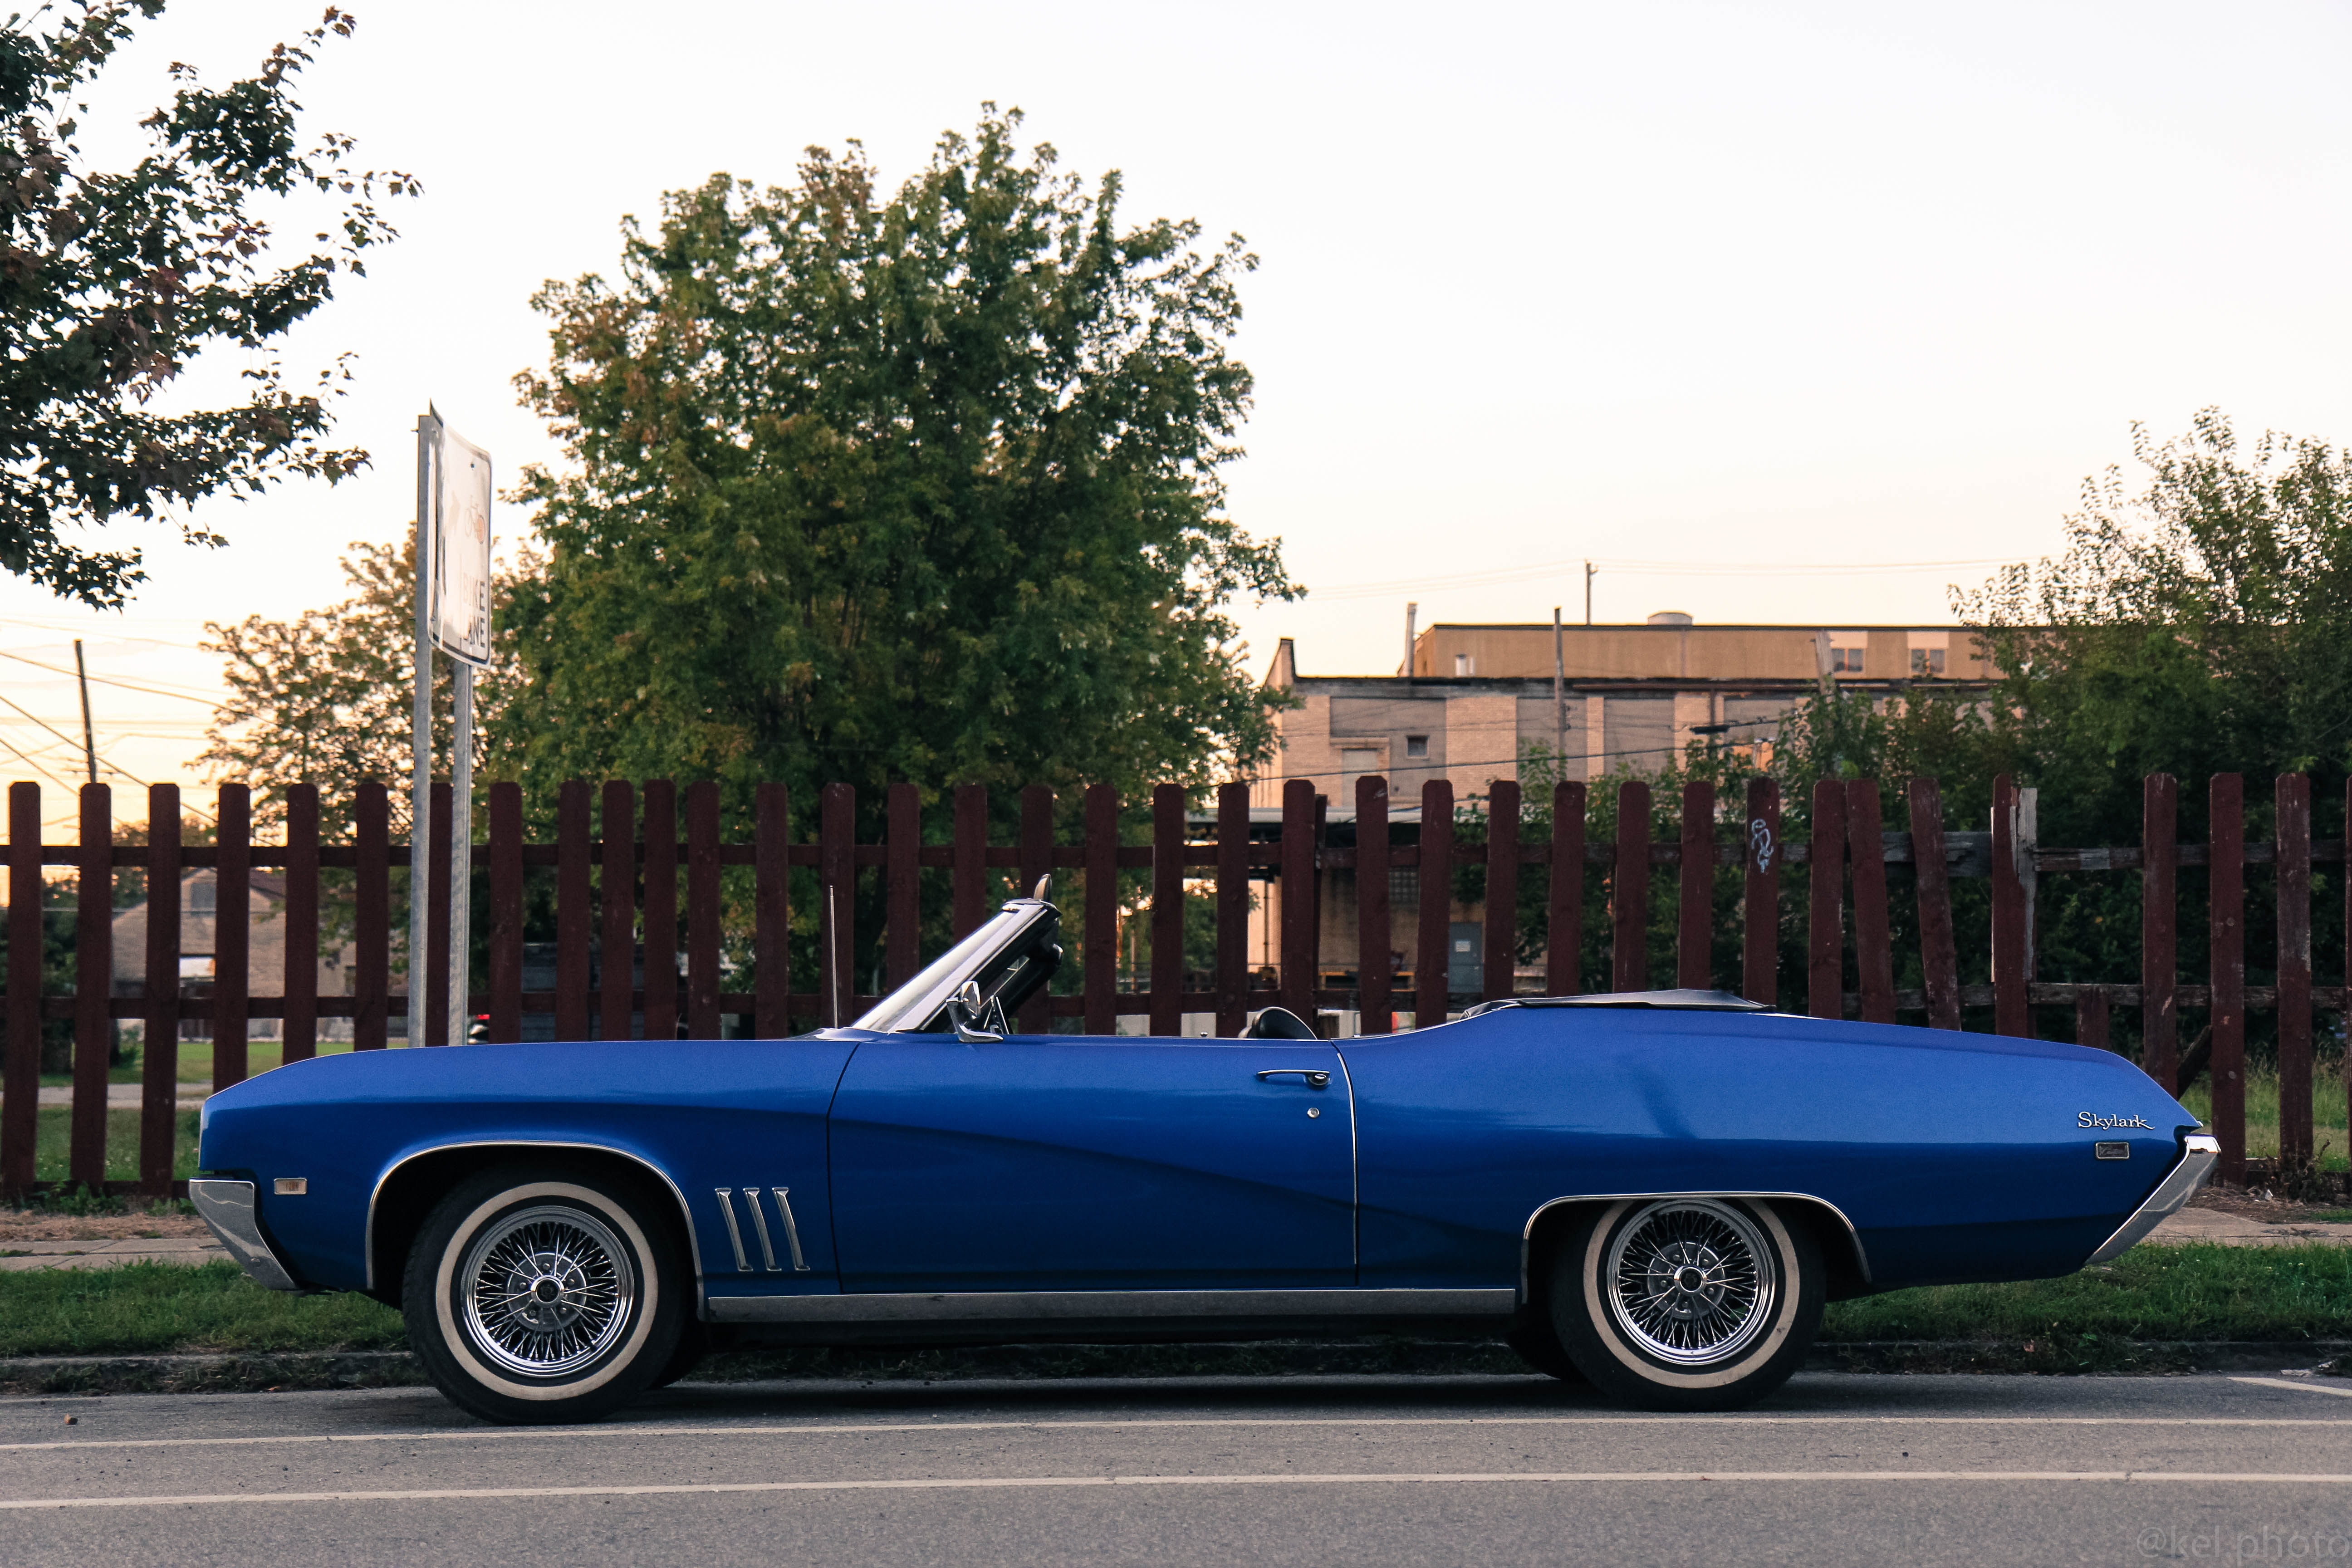 blue convertible coupe on street during daytime